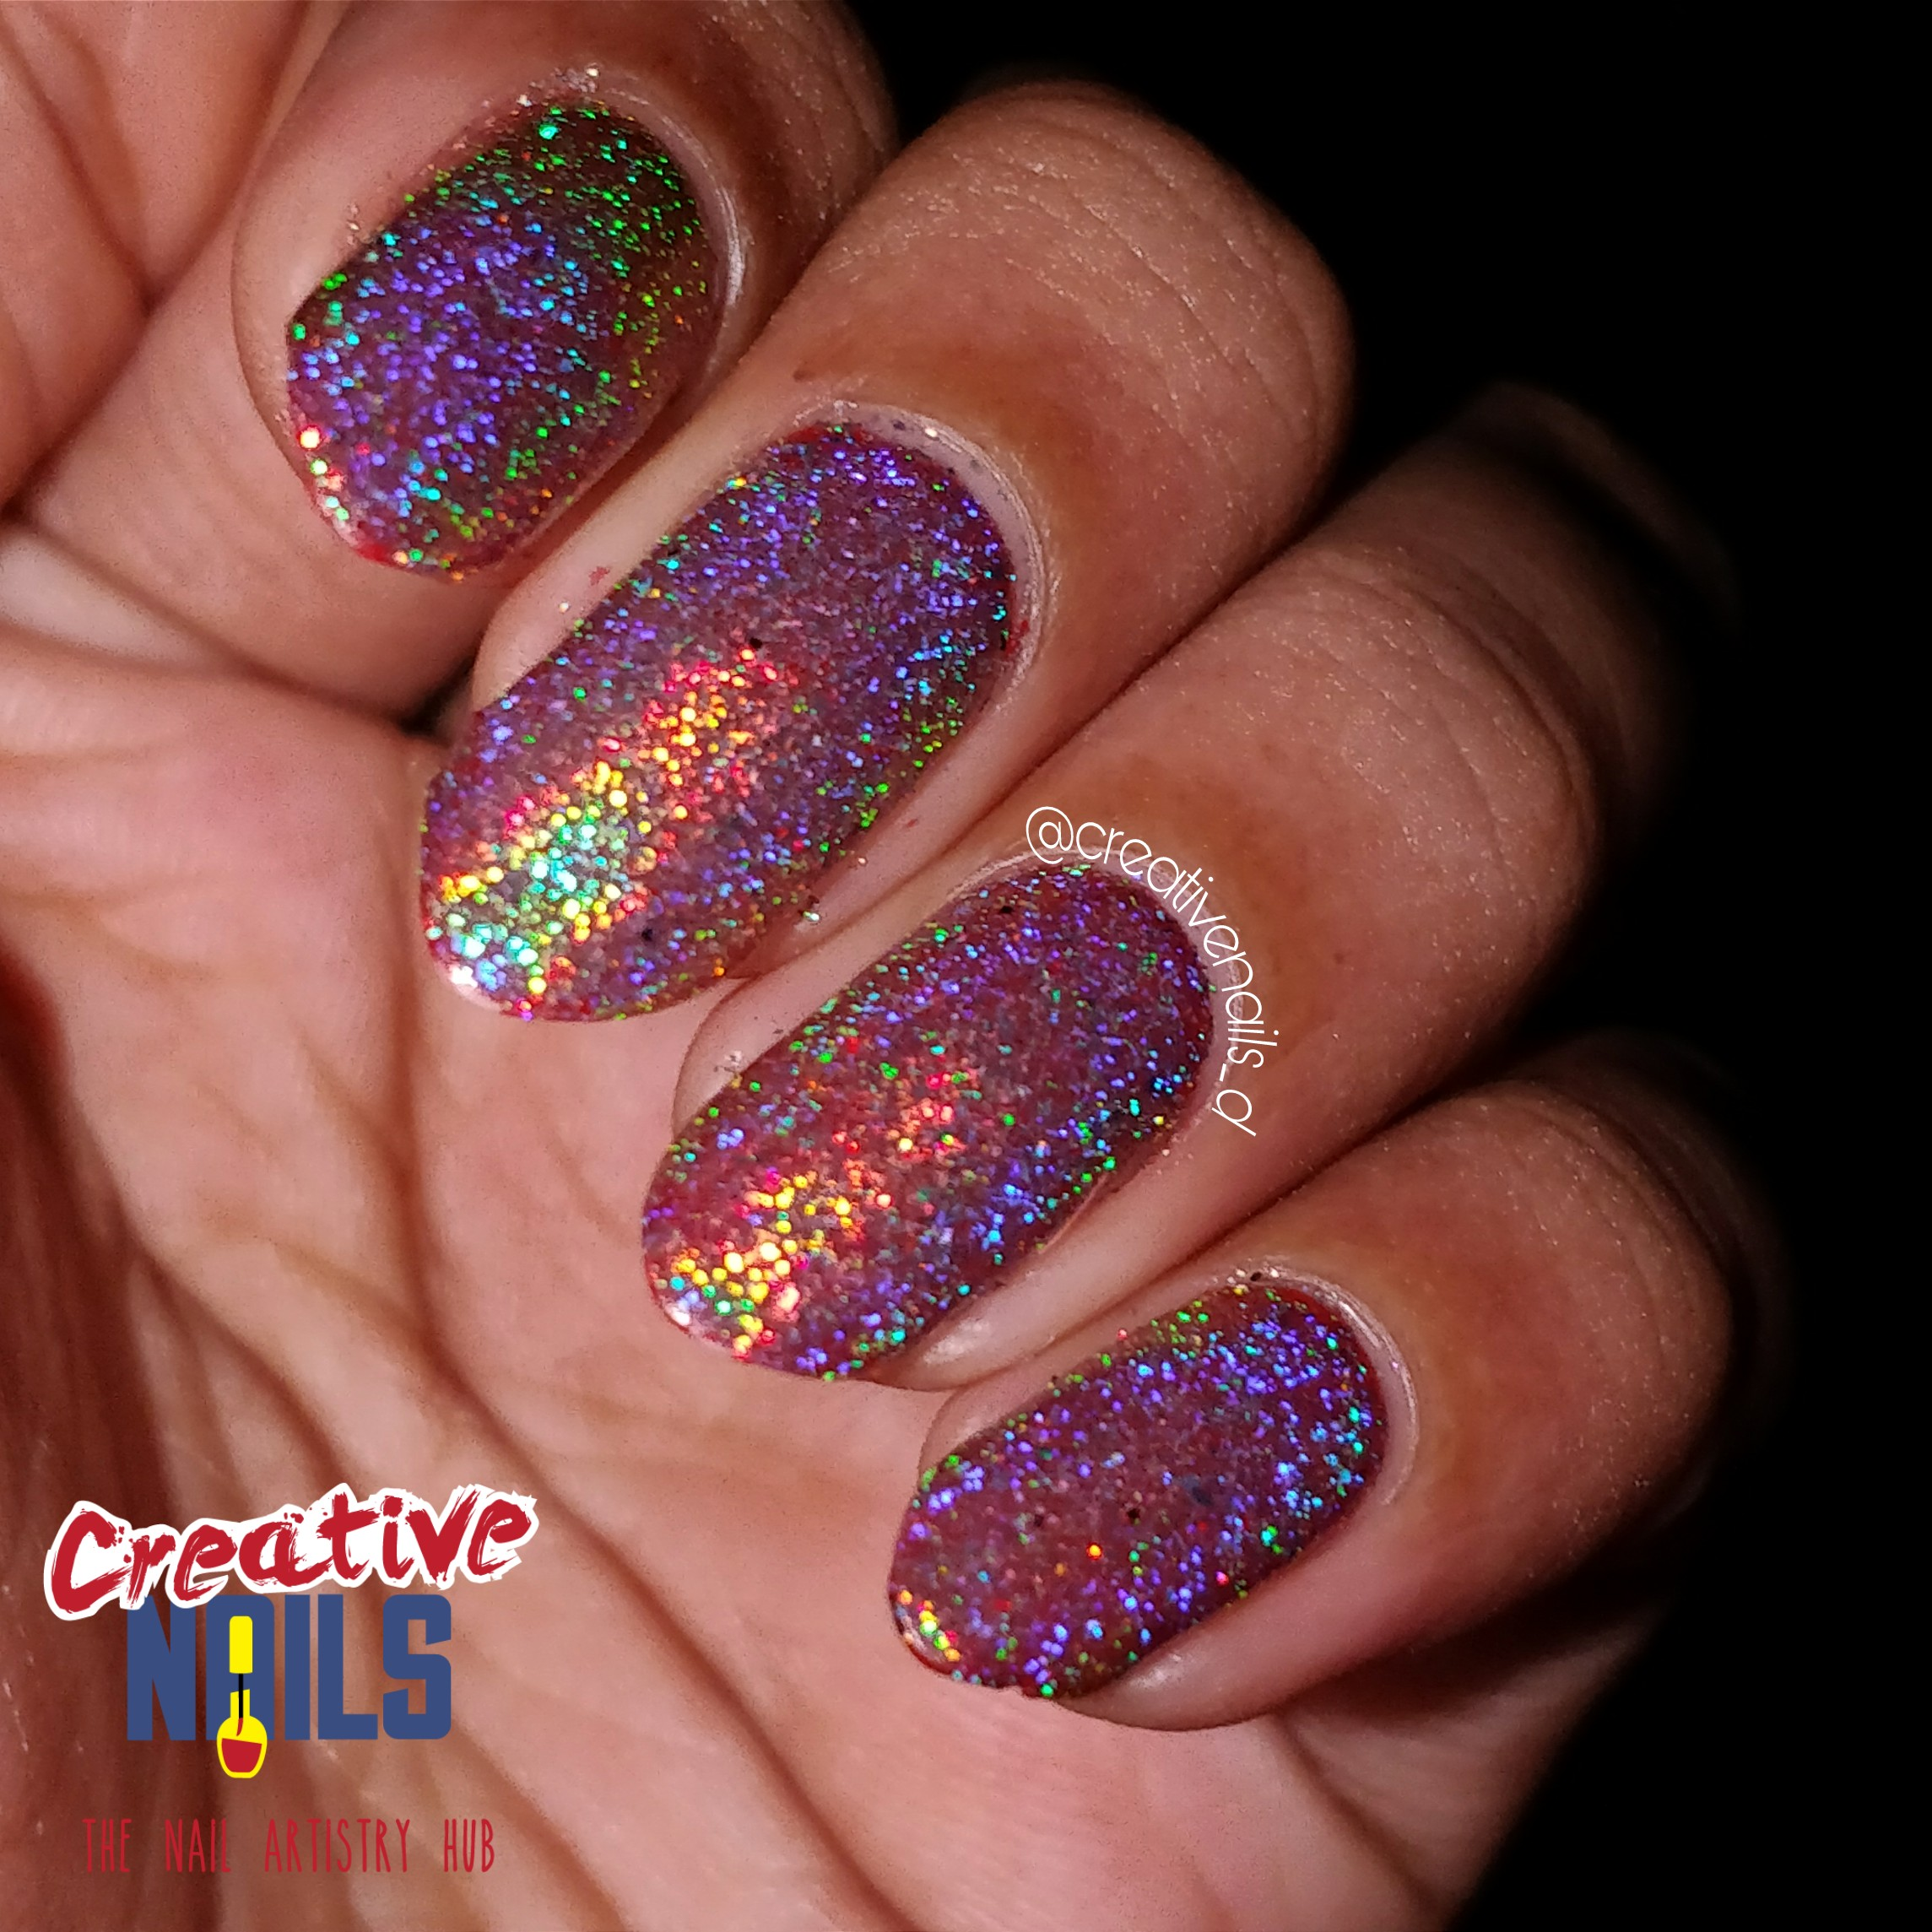 Holographic Flakies Nail Art On Red Base - Flash